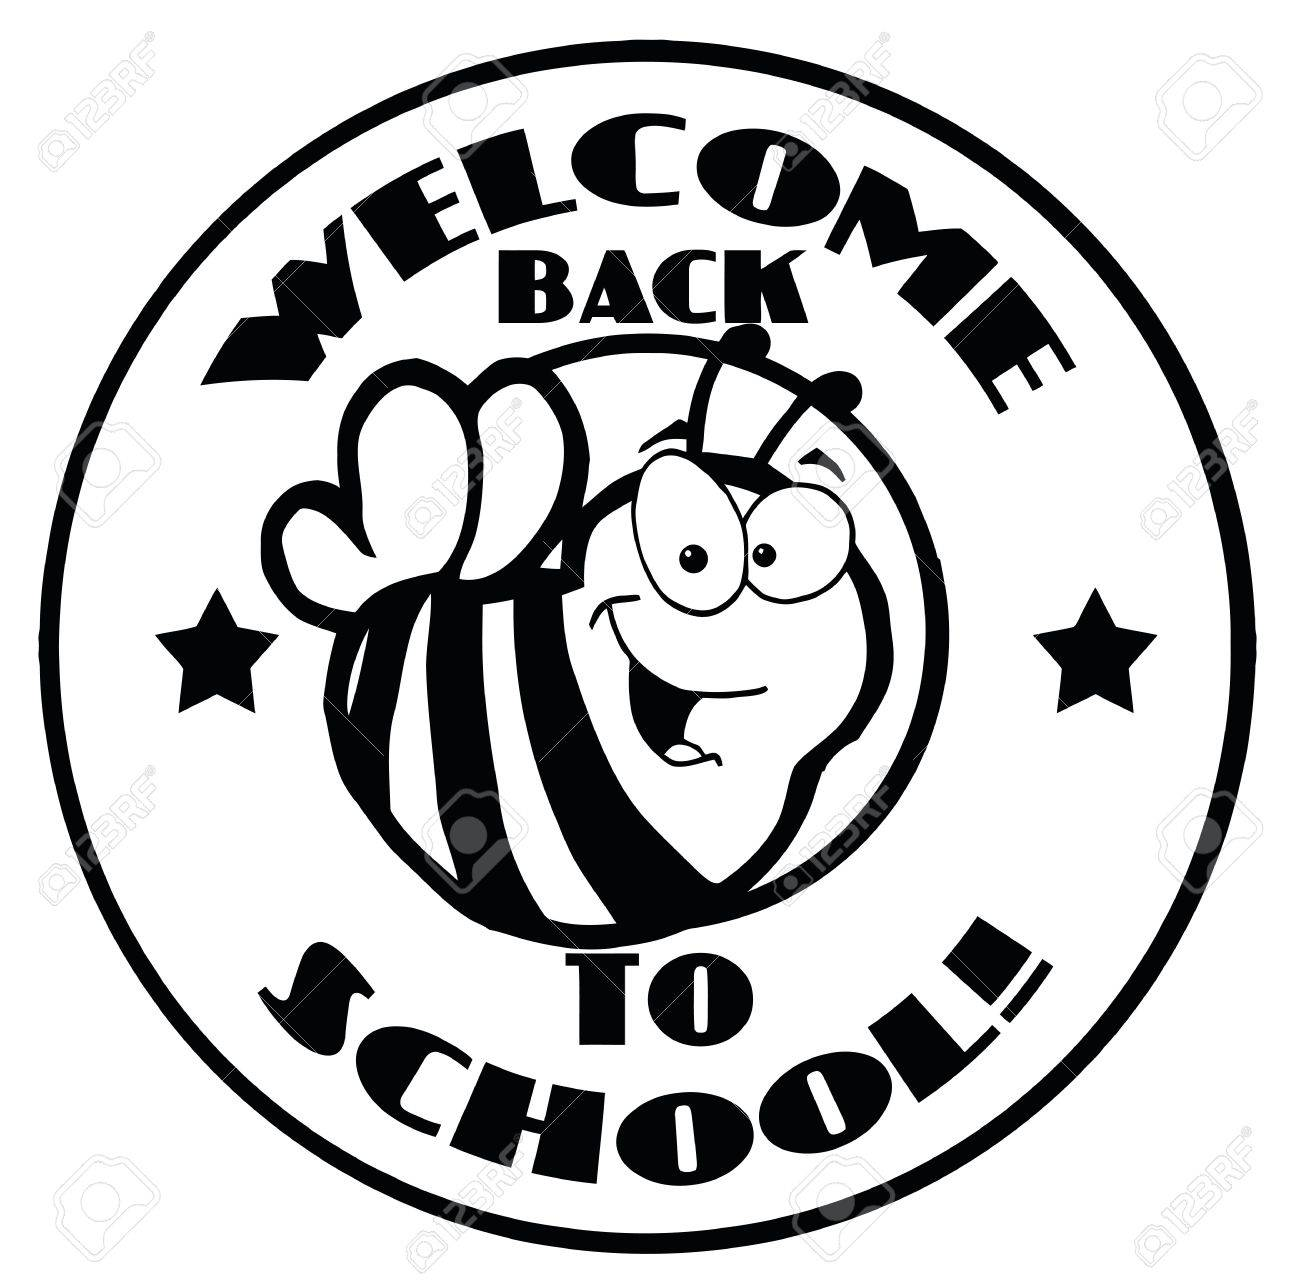 Black And White Welcome Back To School Bee Circle.